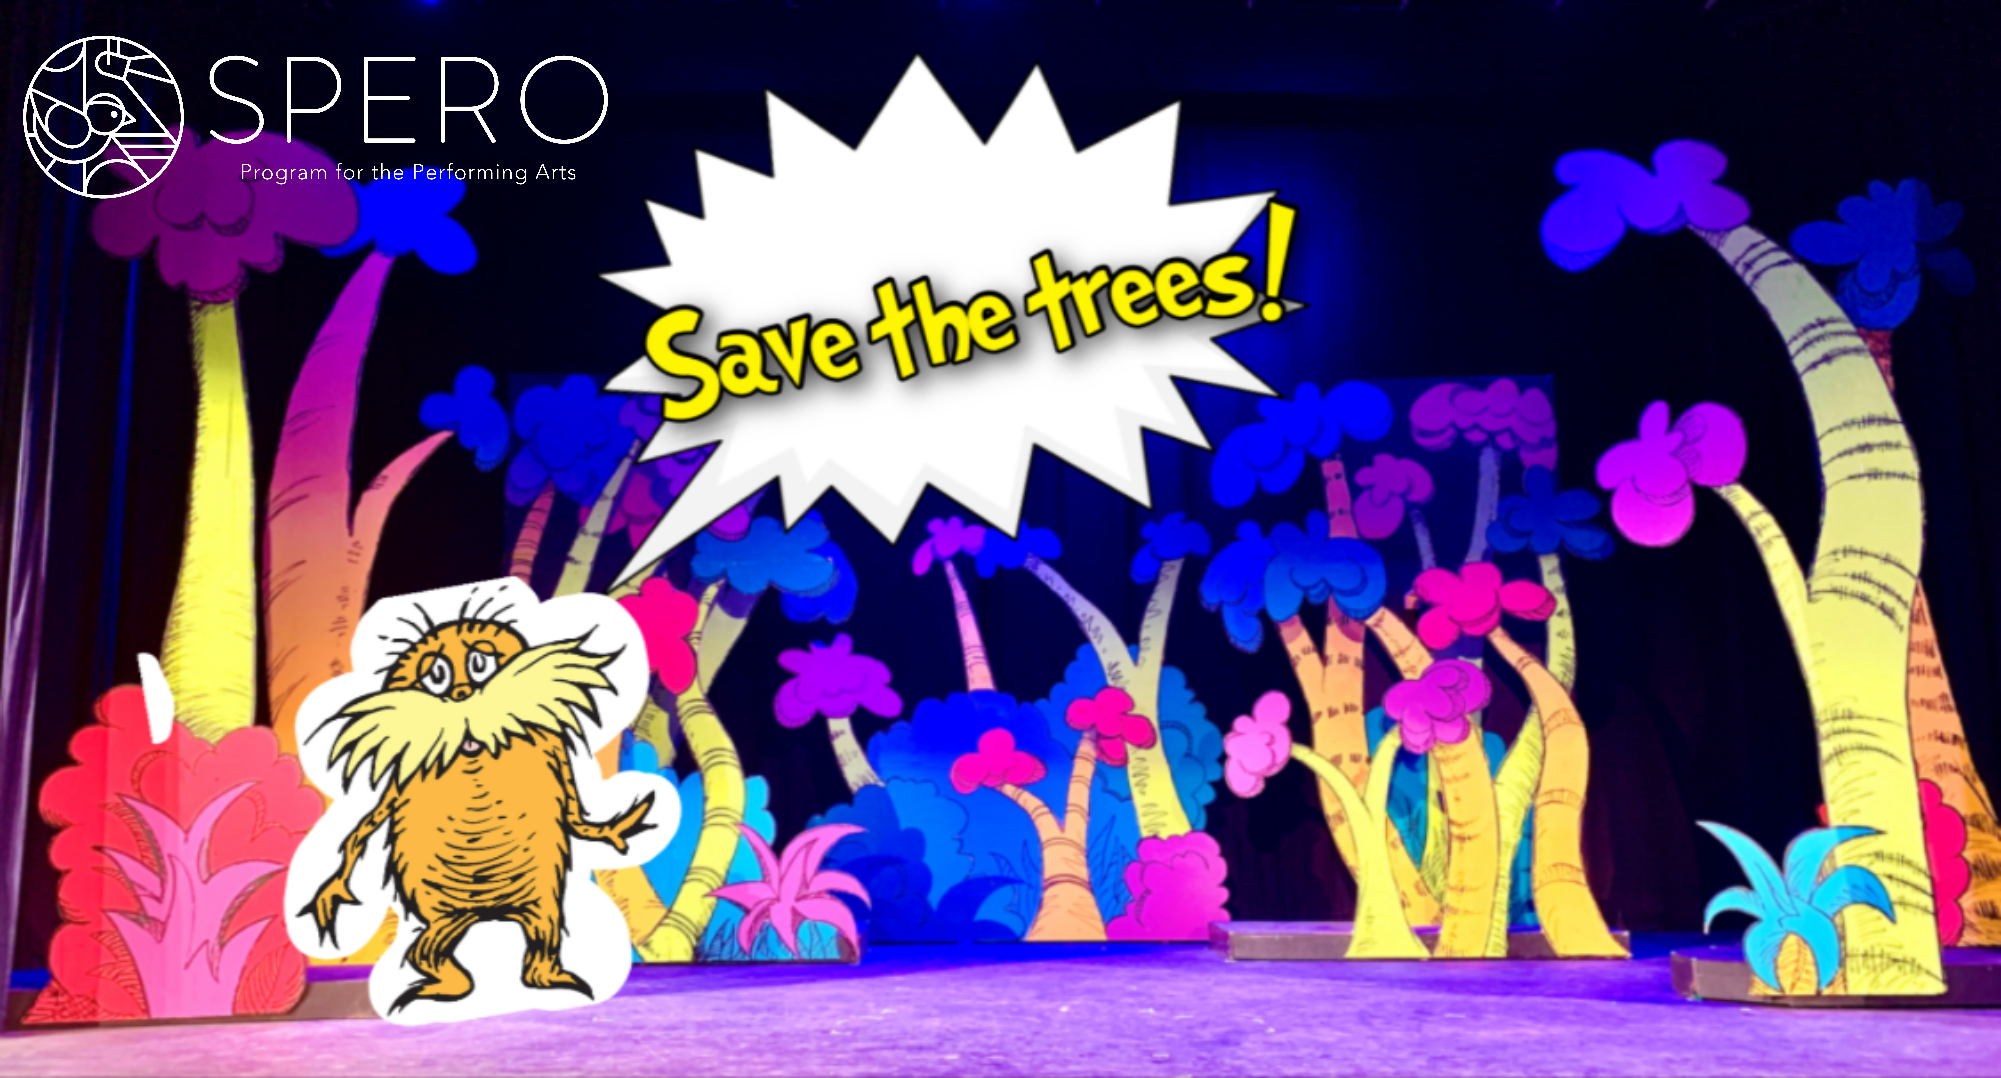 Save the trees2.PNG